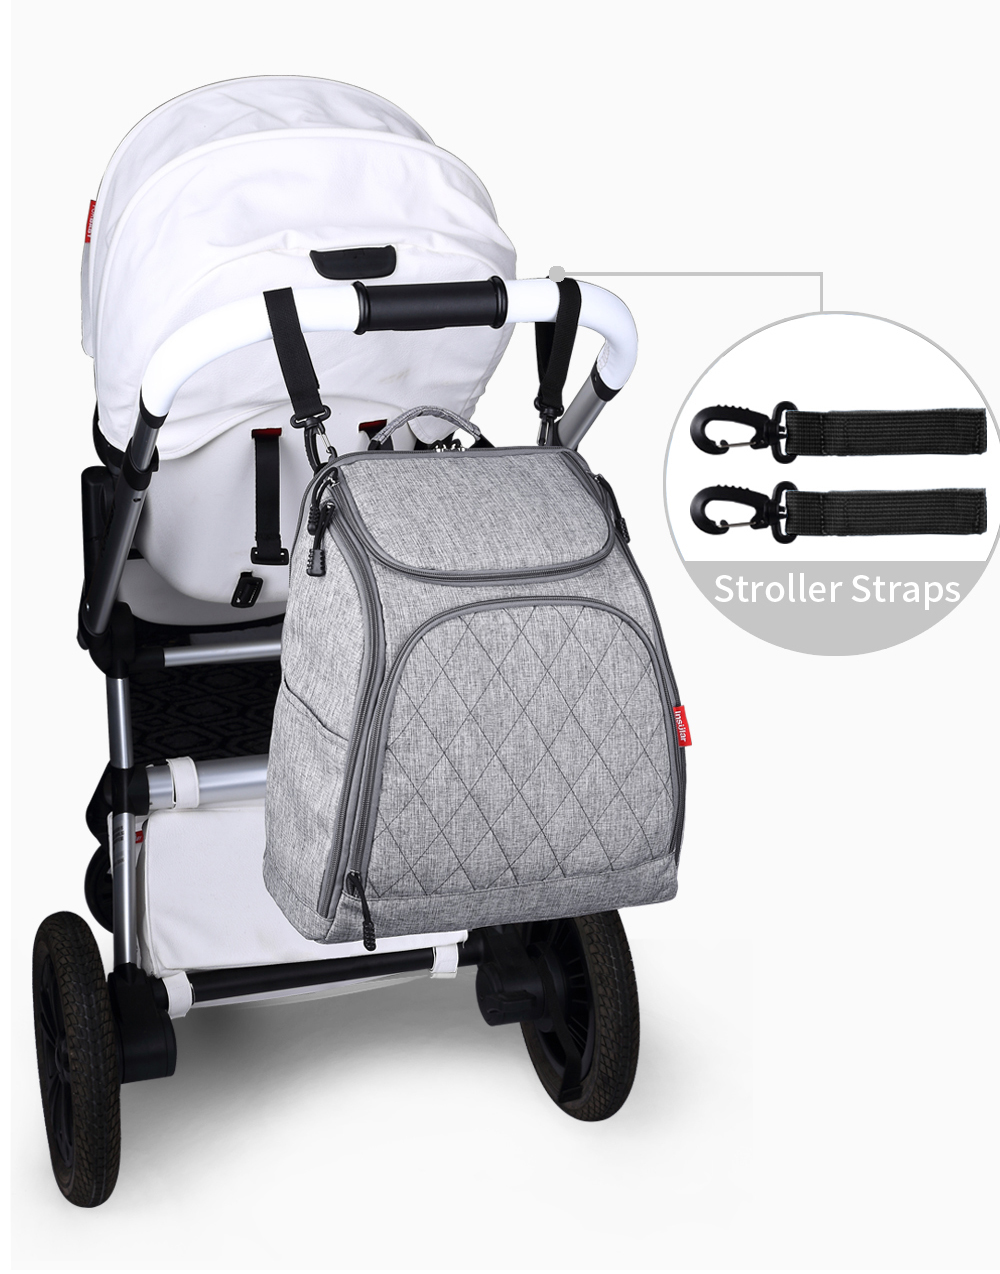 INSULAR Fashion Maternity Nappy Backpack Brand Large Capacity Baby Diaper Stroller Bag Baby Nursing BagINSULAR Fashion Maternity Nappy Backpack Brand Large Capacity Baby Diaper Stroller Bag Baby Nursing Bag